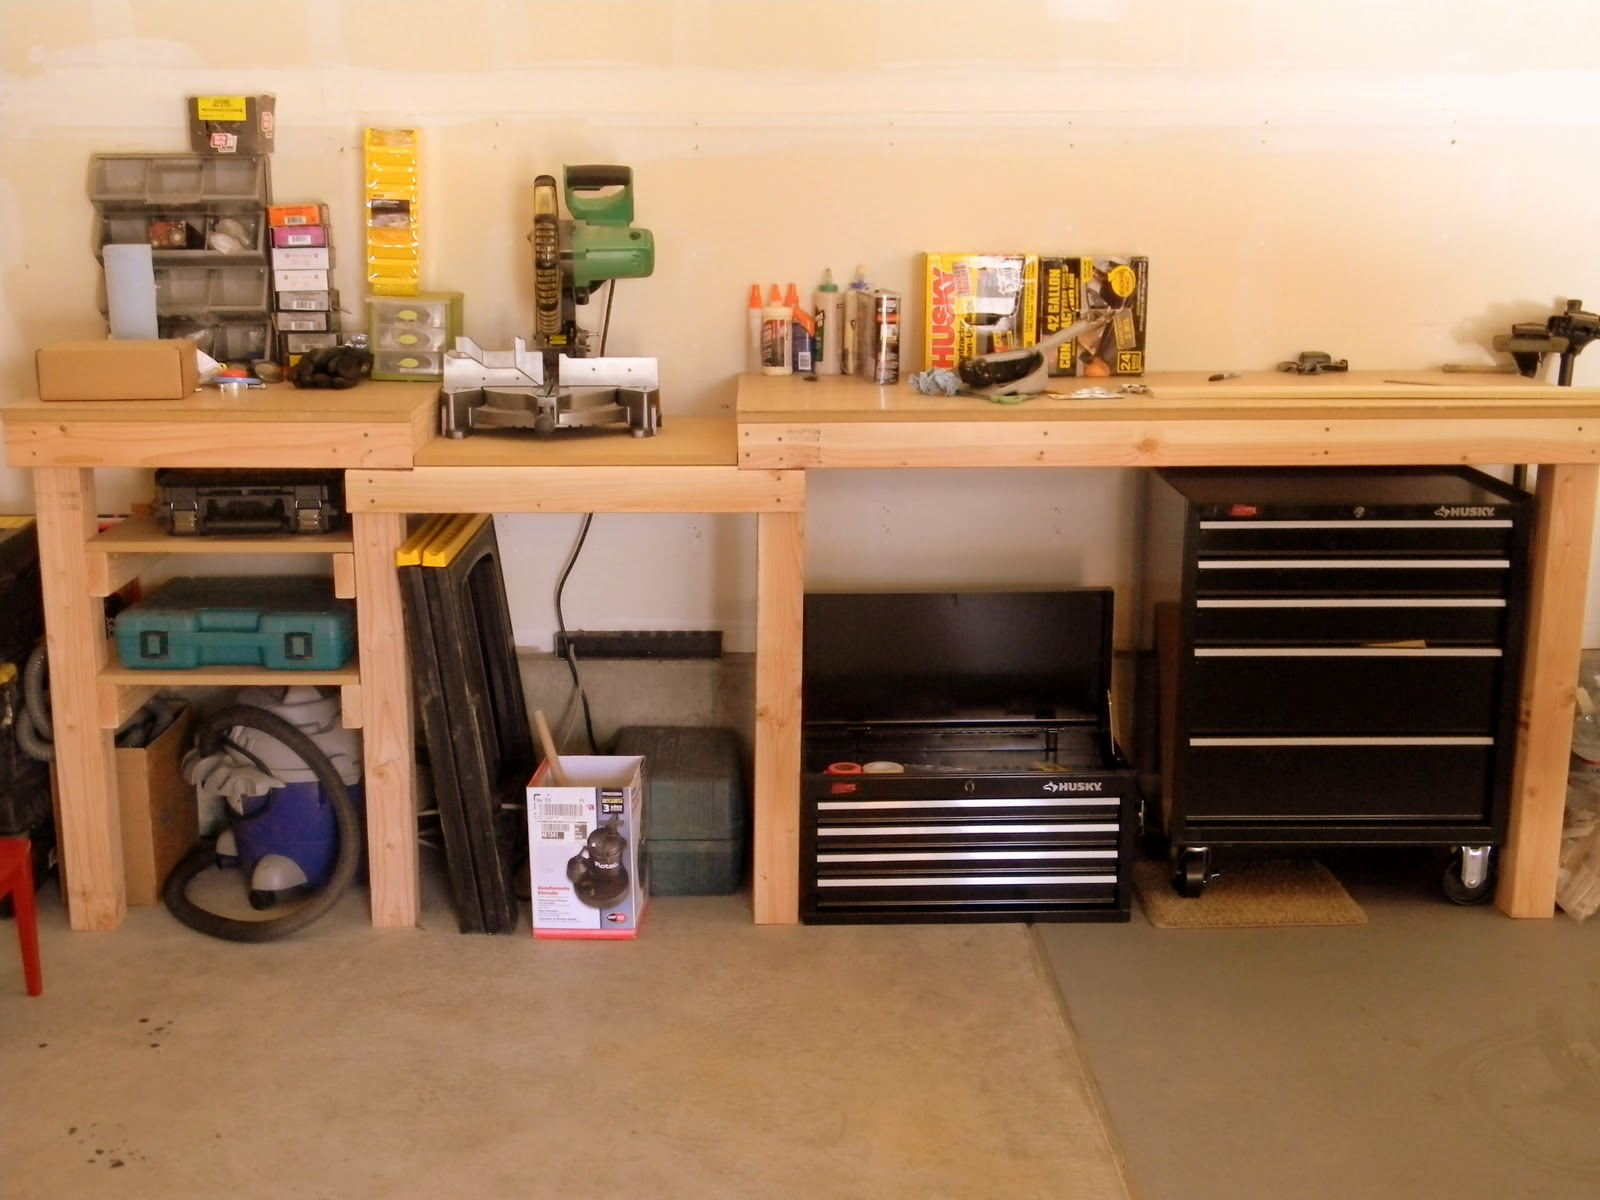 diy workbench organization - Workbench Design Ideas